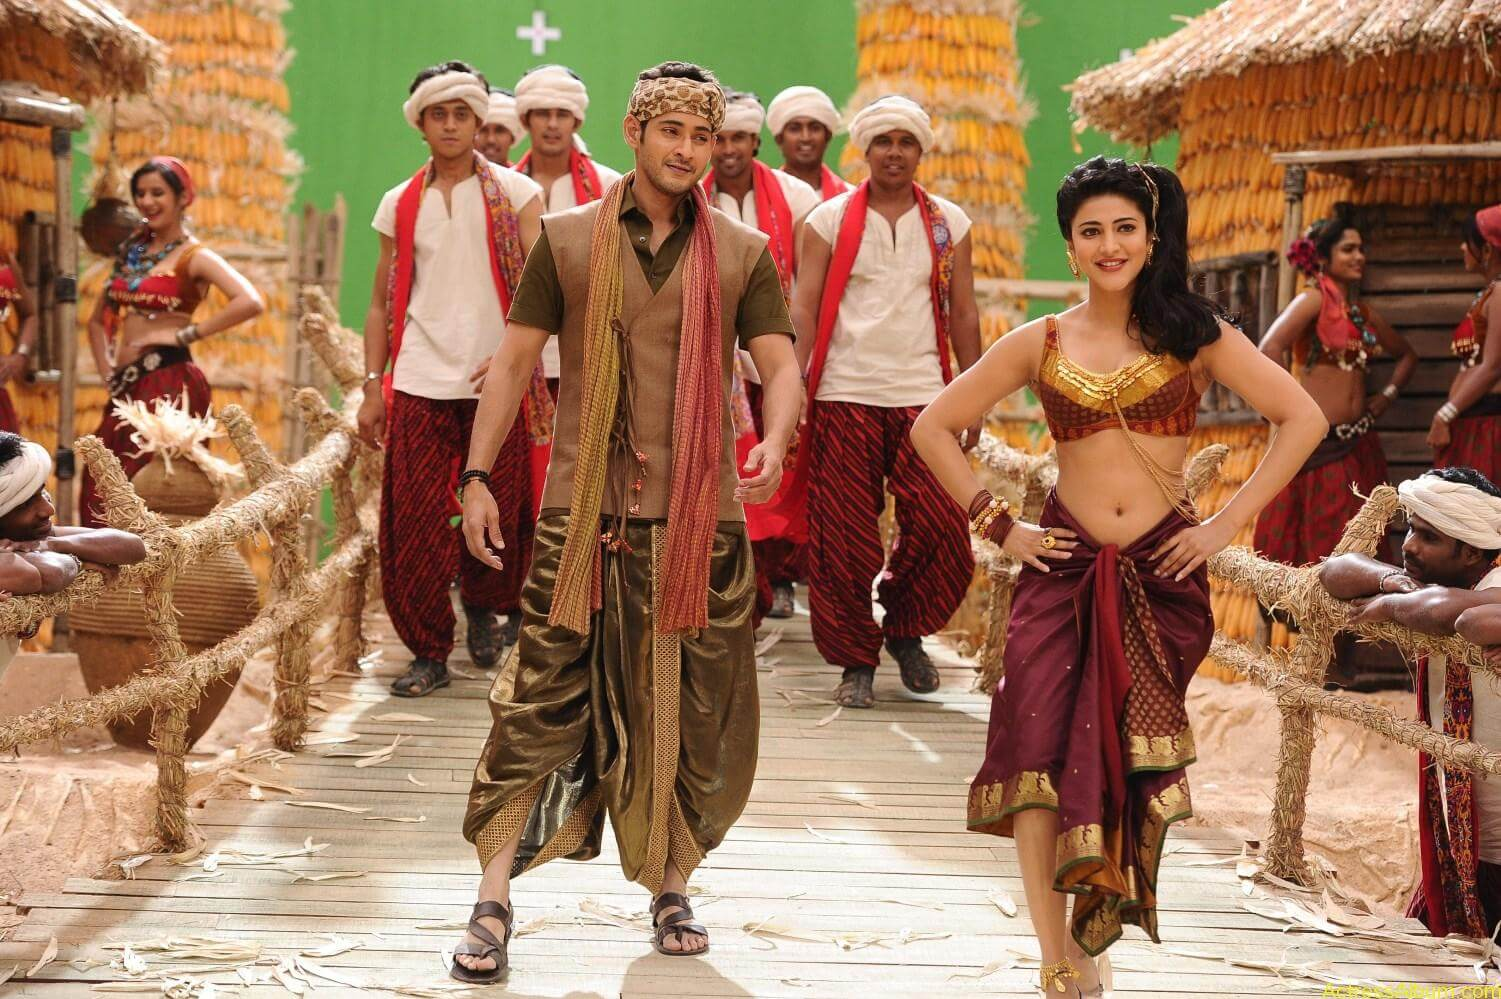 Mahesh-Babu-Shruthi-Haasan-Srimanthudu-Movie-Stills-14